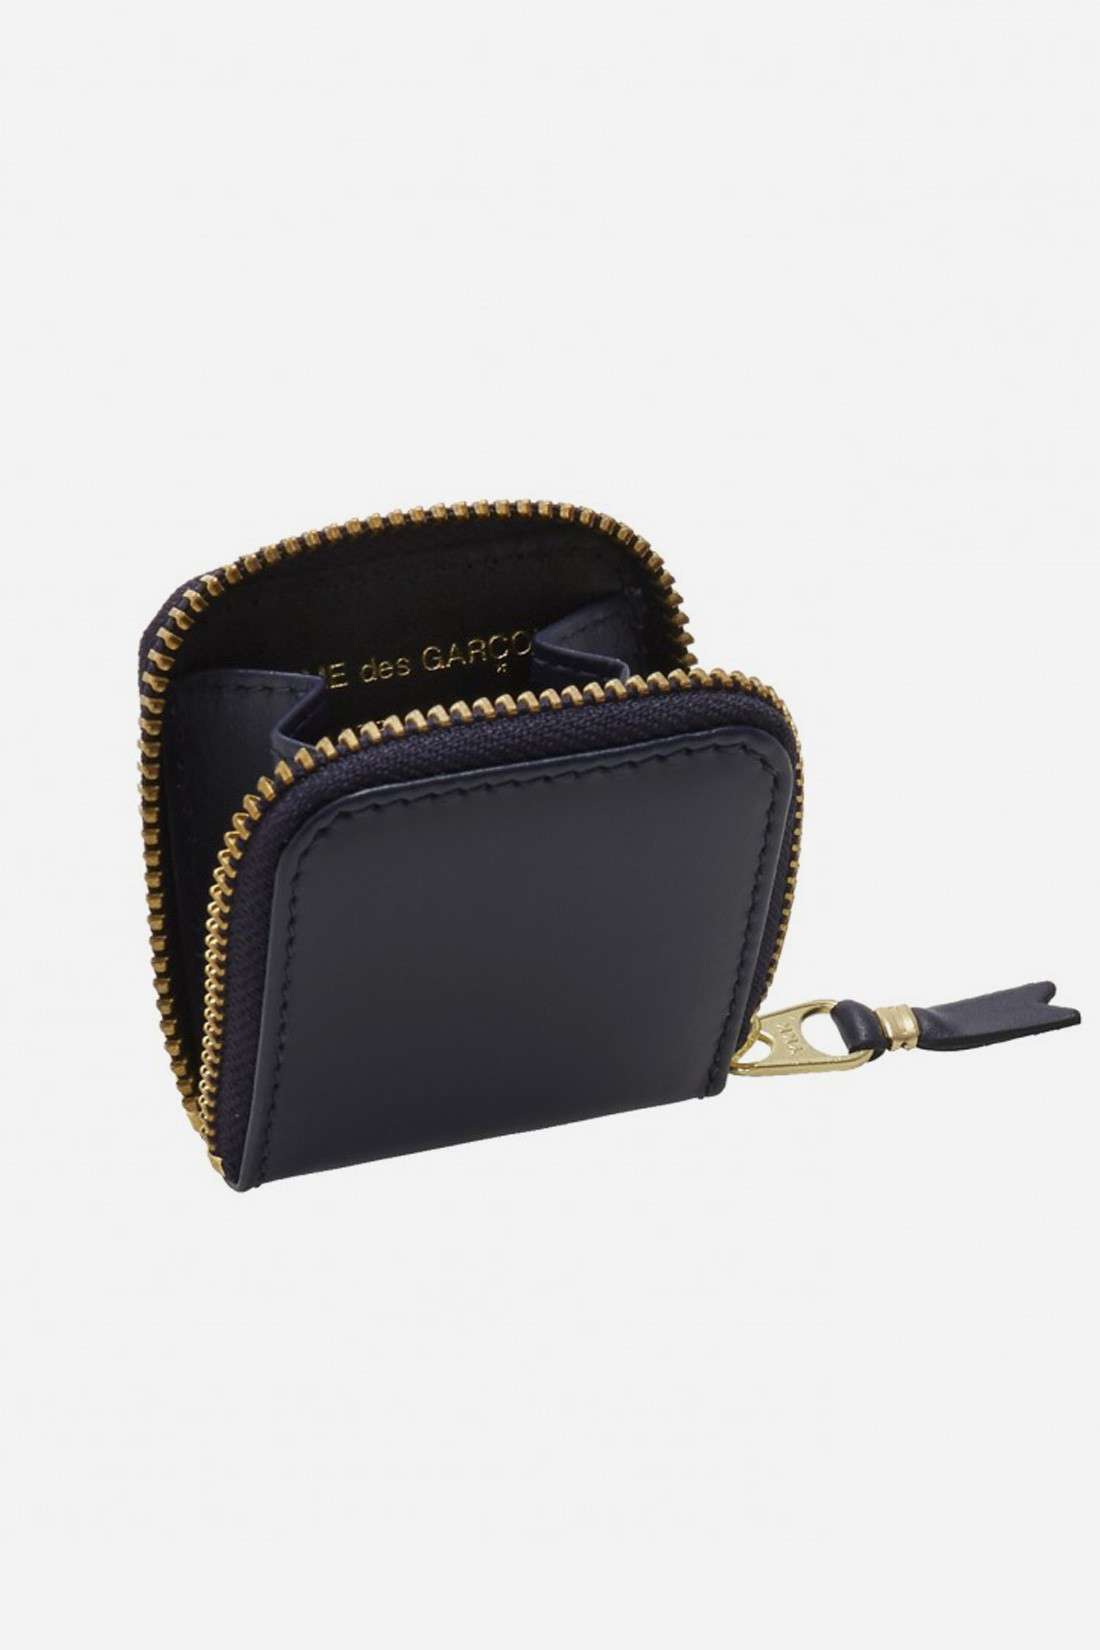 CDG WALLETS FOR WOMAN / Cdg classic leather sa4100 Navy